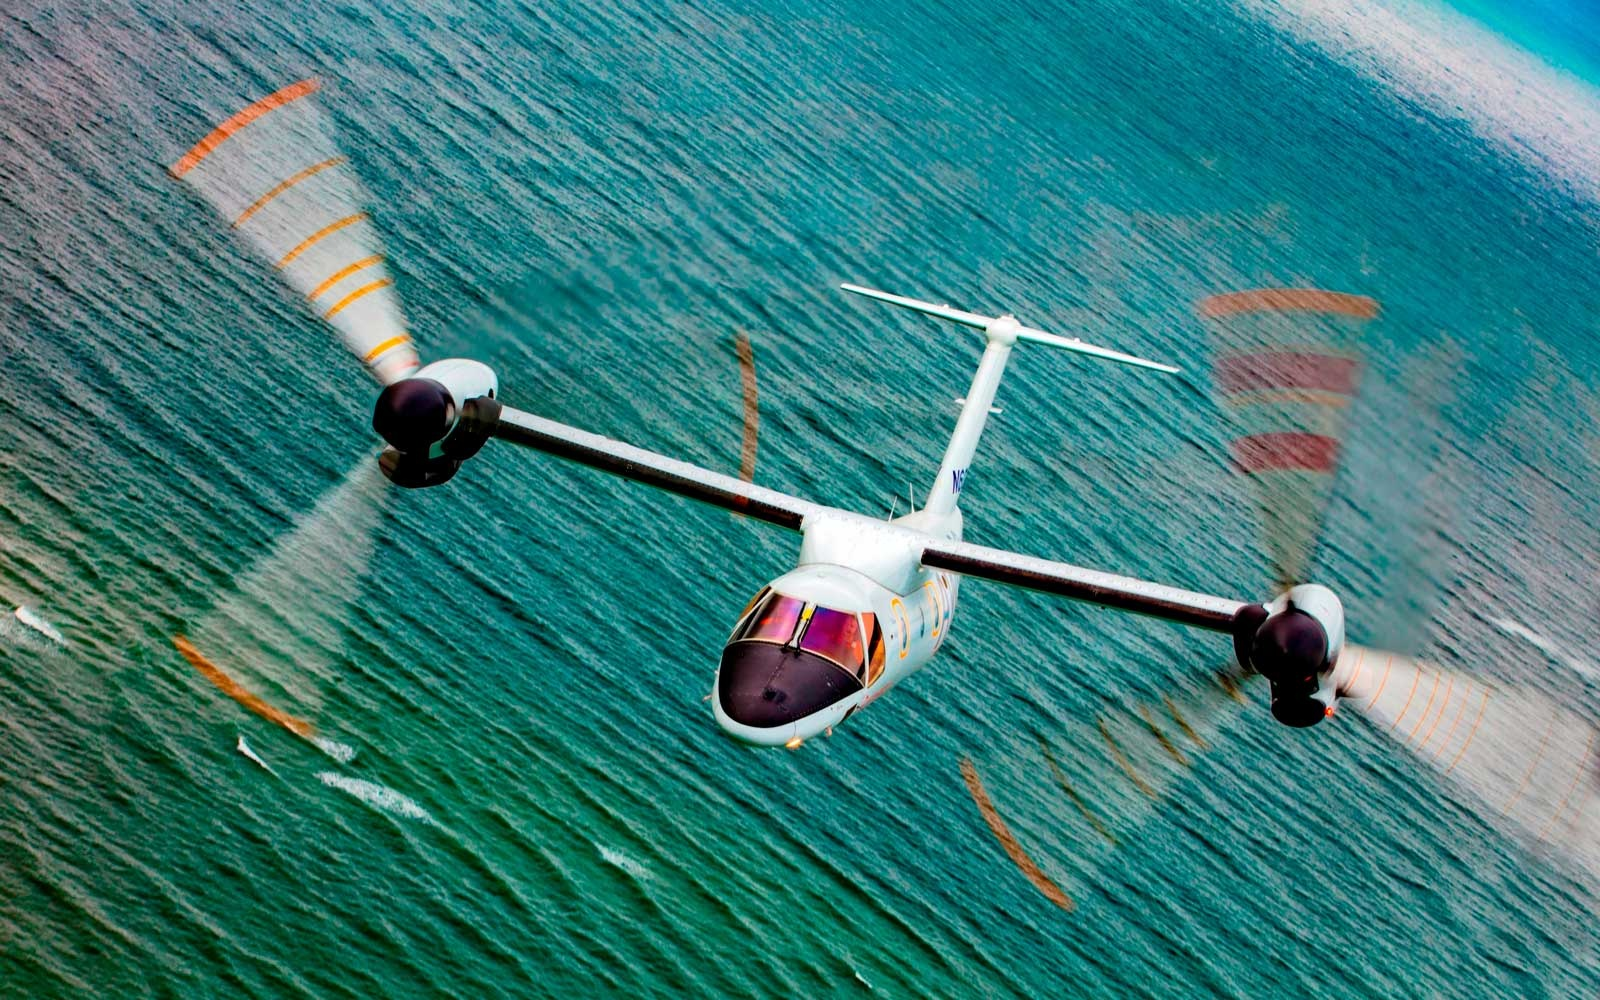 Helicopter and plane hybrid, AW609 tiltrotor by Leonardo